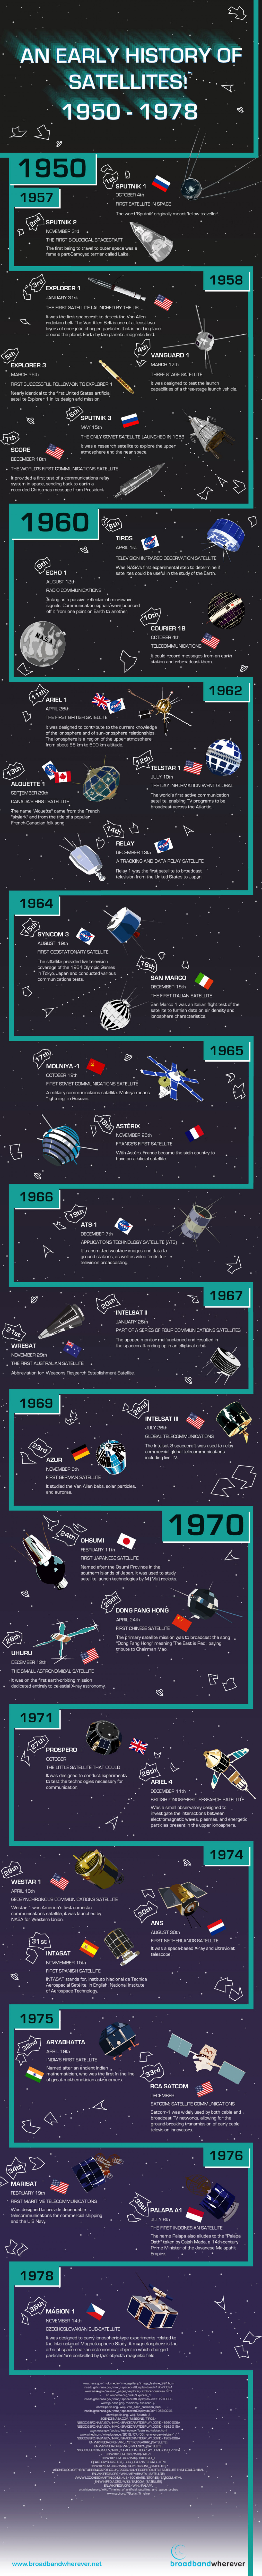 An Early History of Satellites Infographic